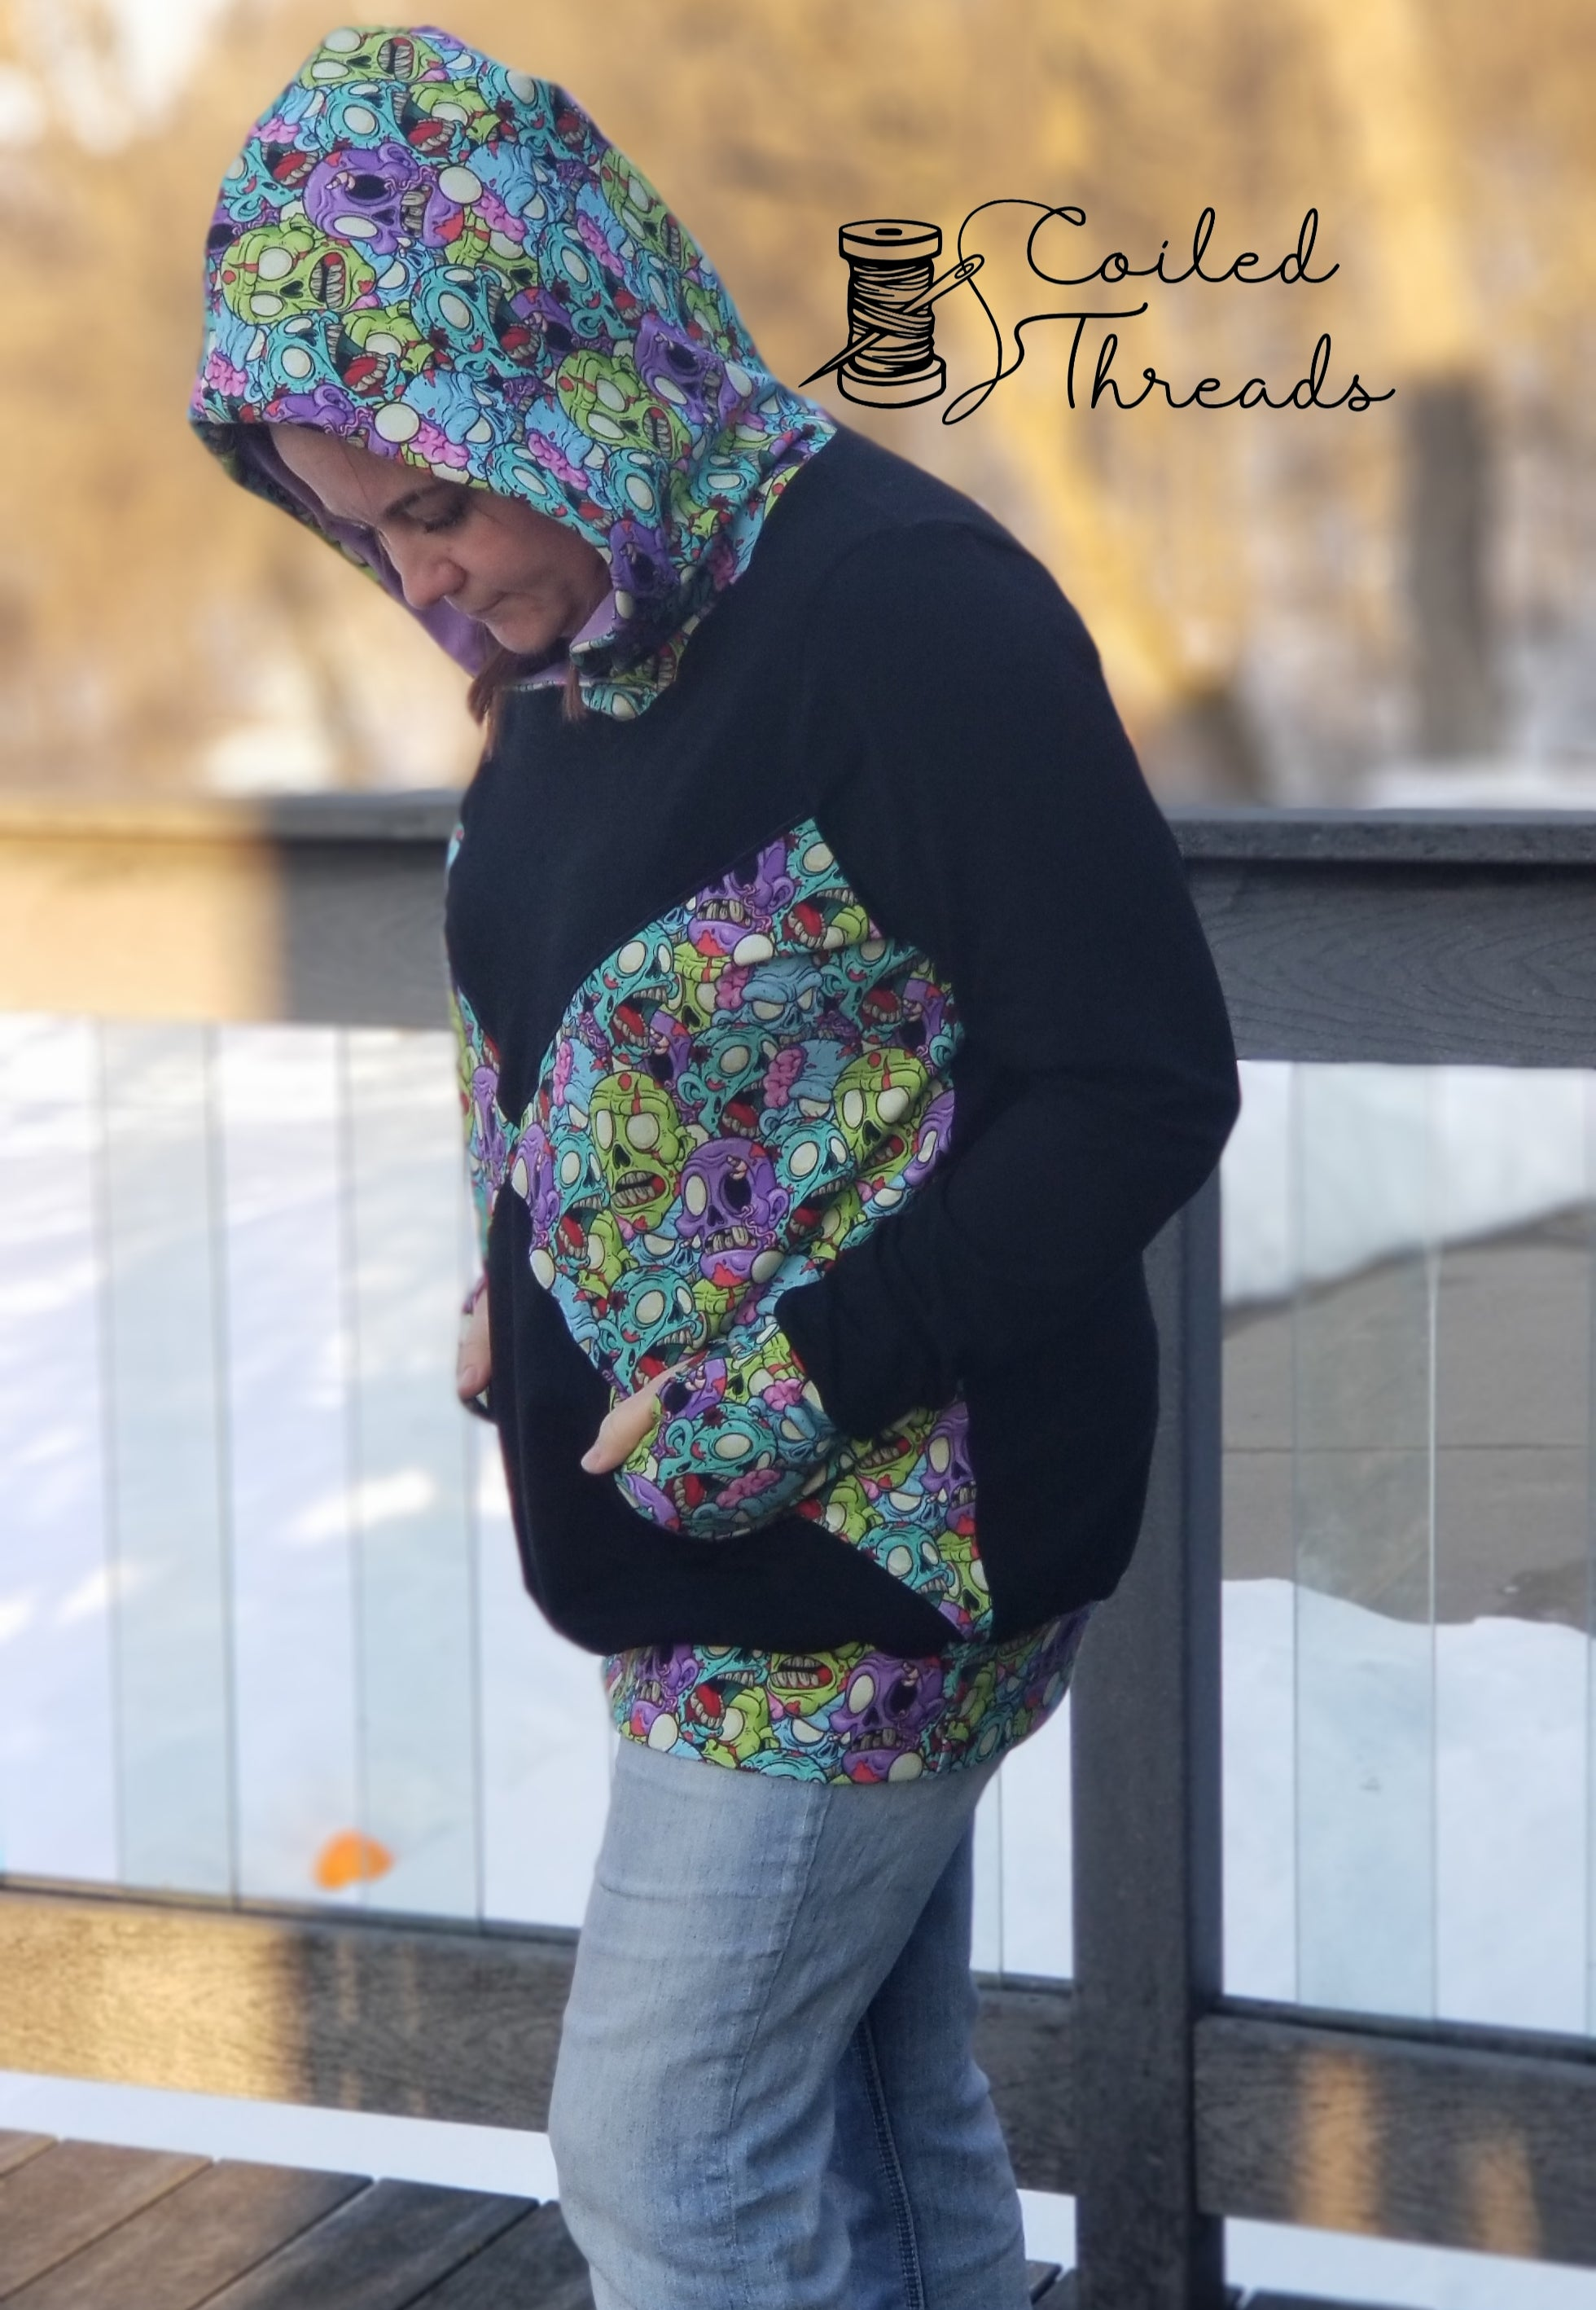 True North Hoodie for Adults - PDF Sewing Pattern - PROJECTOR/A0 File included